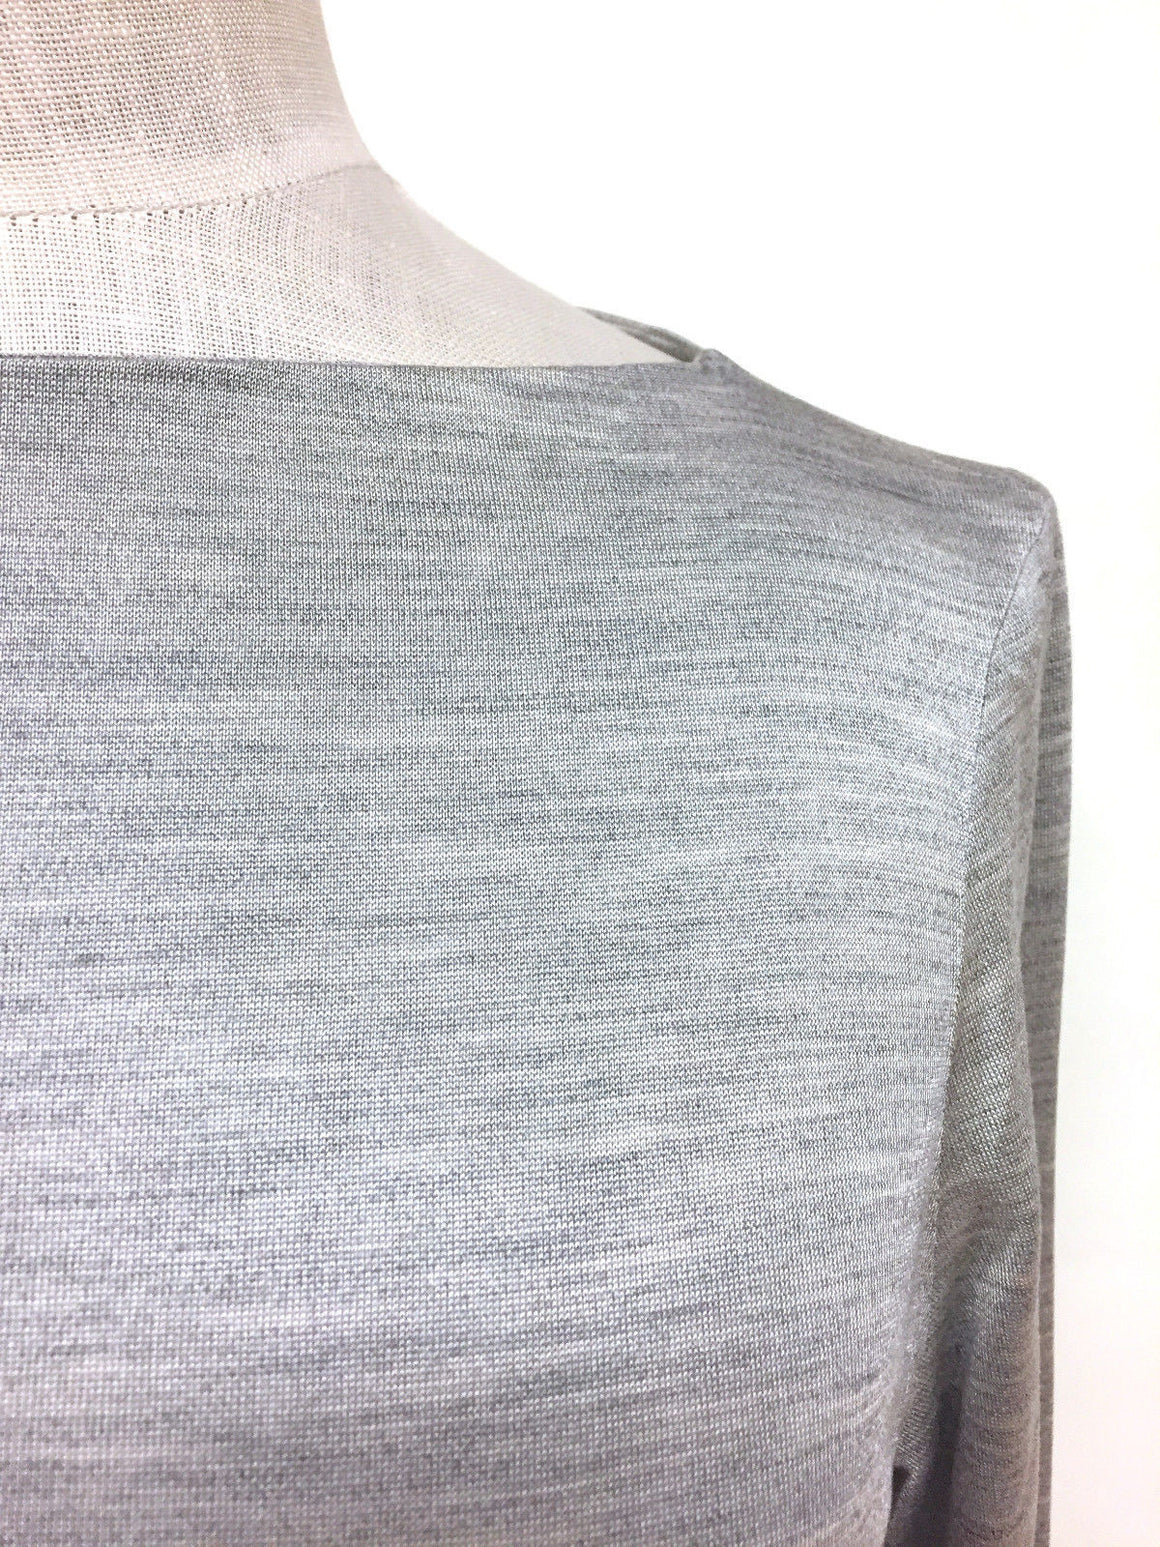 bisbiz.com HERMES Silver-Gray Silk Long Sleeve Double-Face Knit T-Shirt Top Blouse Size: 36 - Small - Bis Luxury Resale